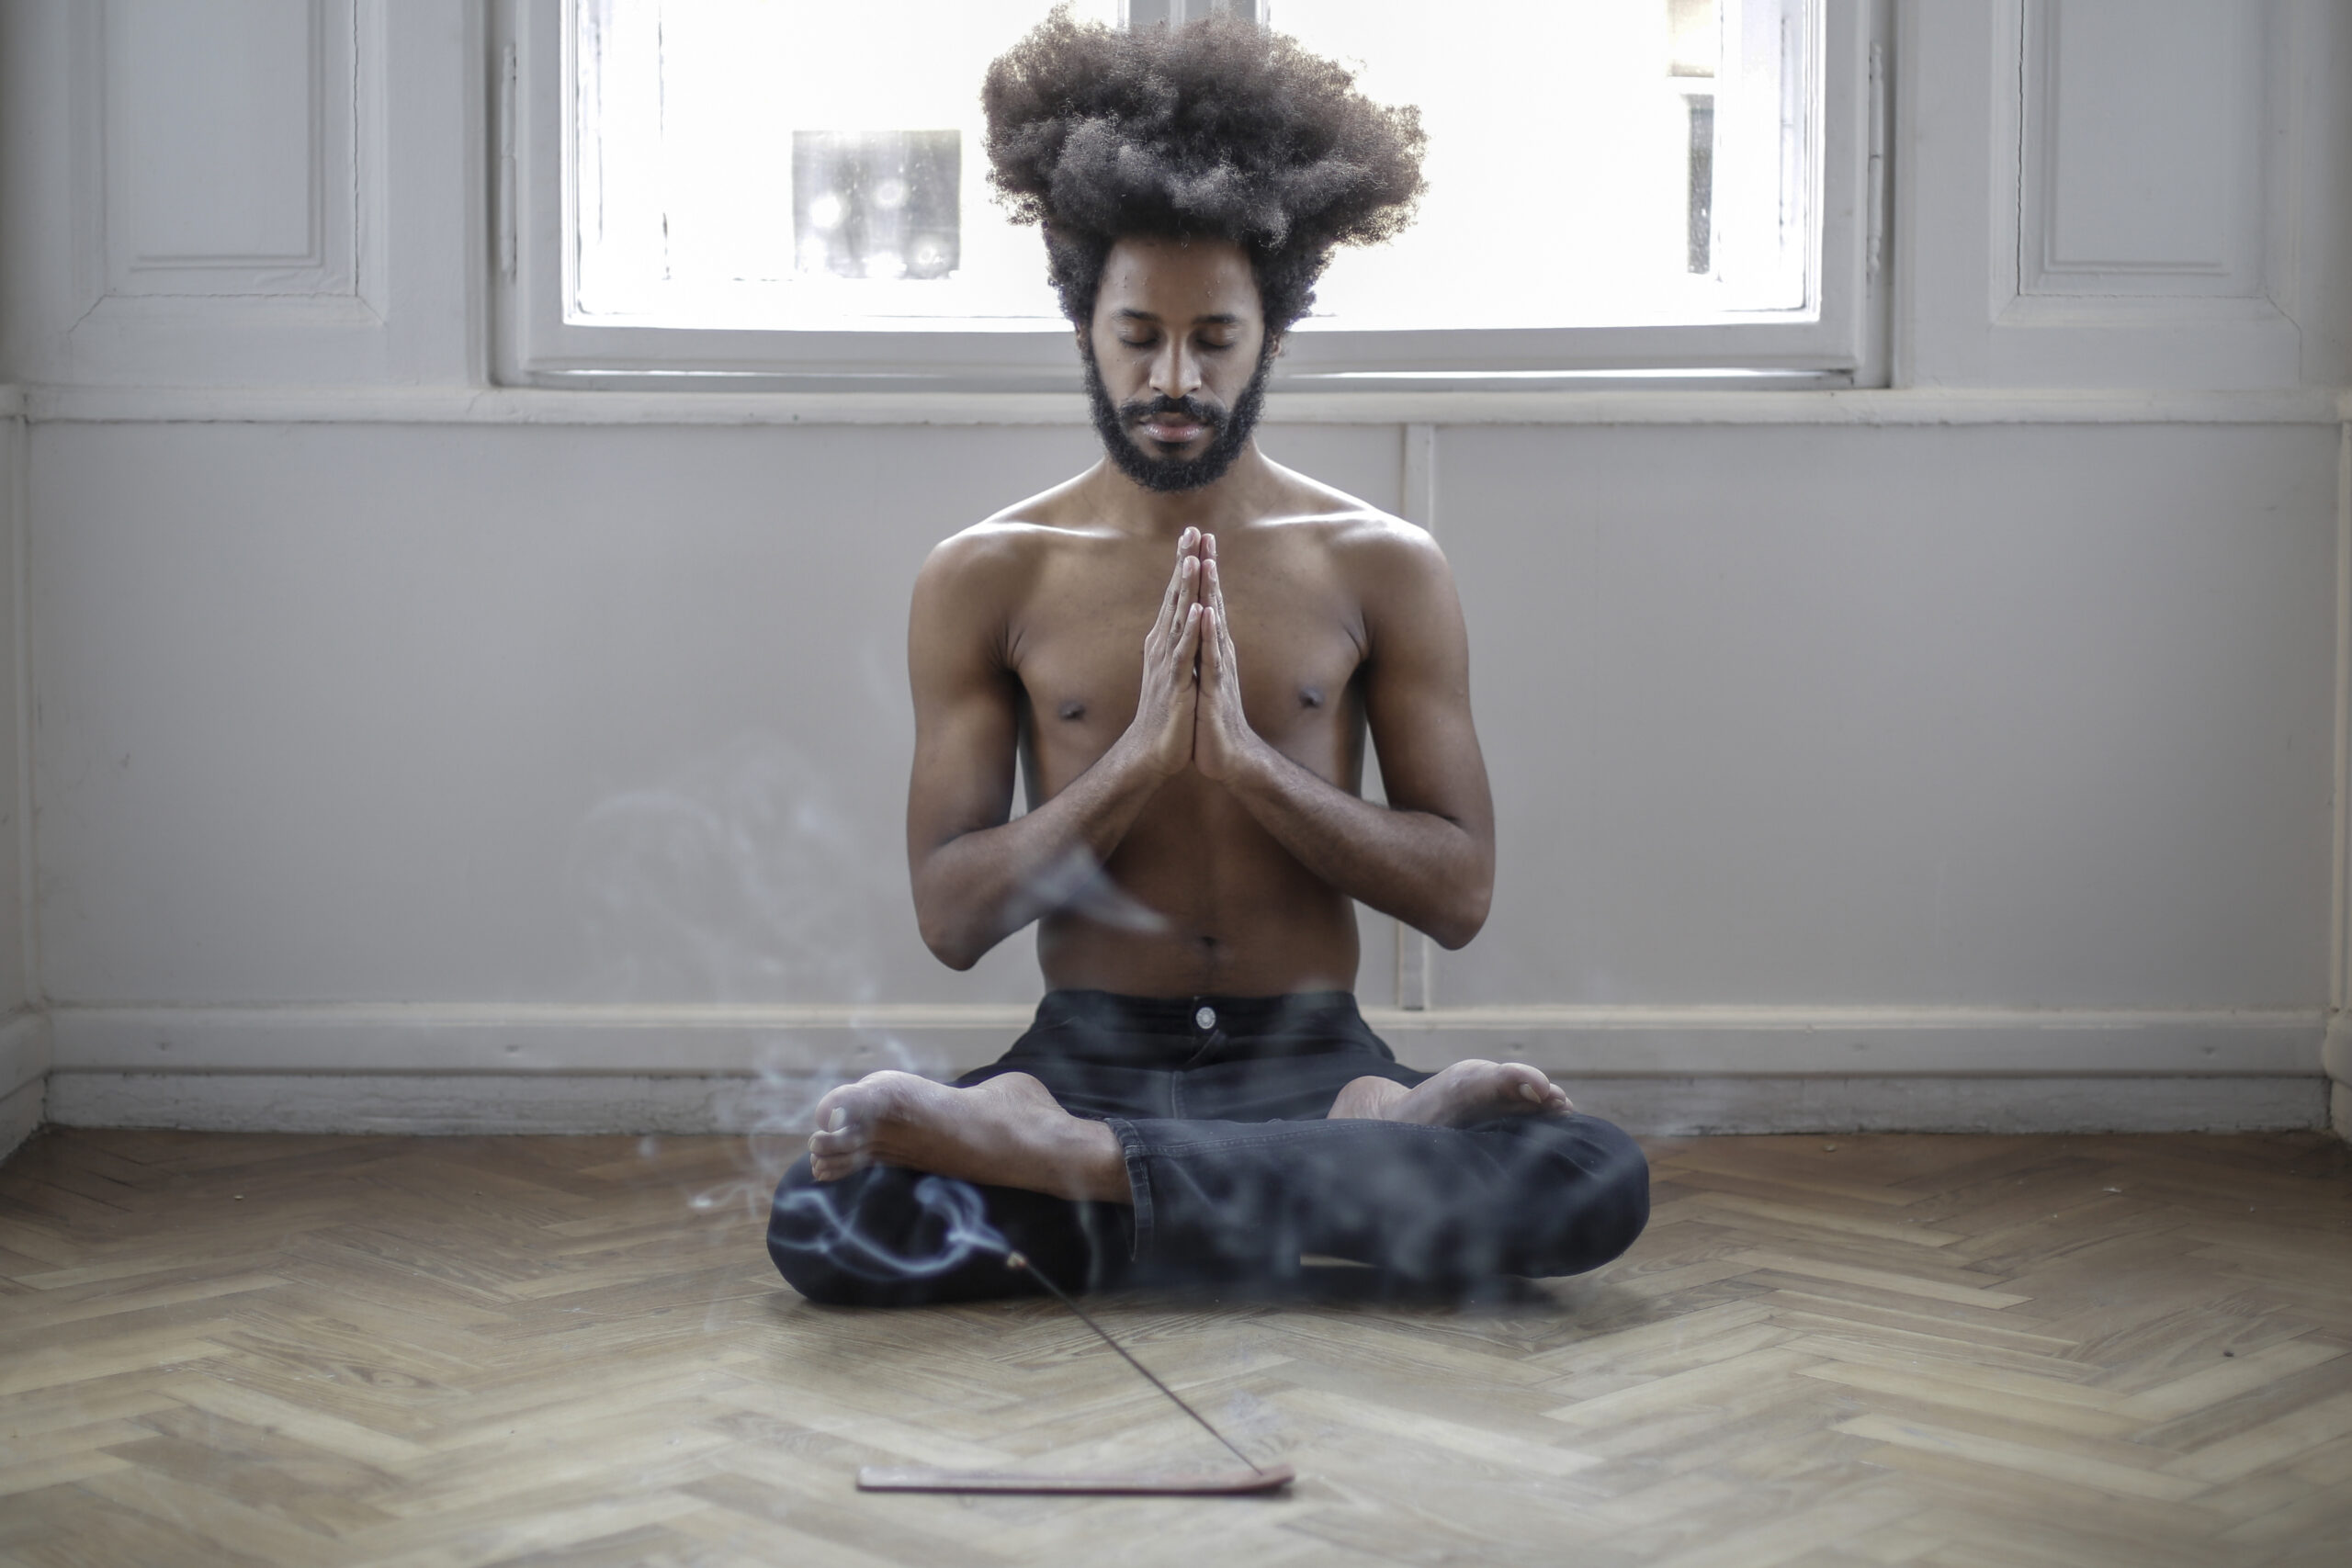 "<a href=""https://www.pexels.com/photo/topless-man-in-black-denim-jeans-sitting-on-floor-doing-meditation-3965401/"" target=""_blank"" rel=""noopener"">Andrea Piacquadio</a> at Pexels"